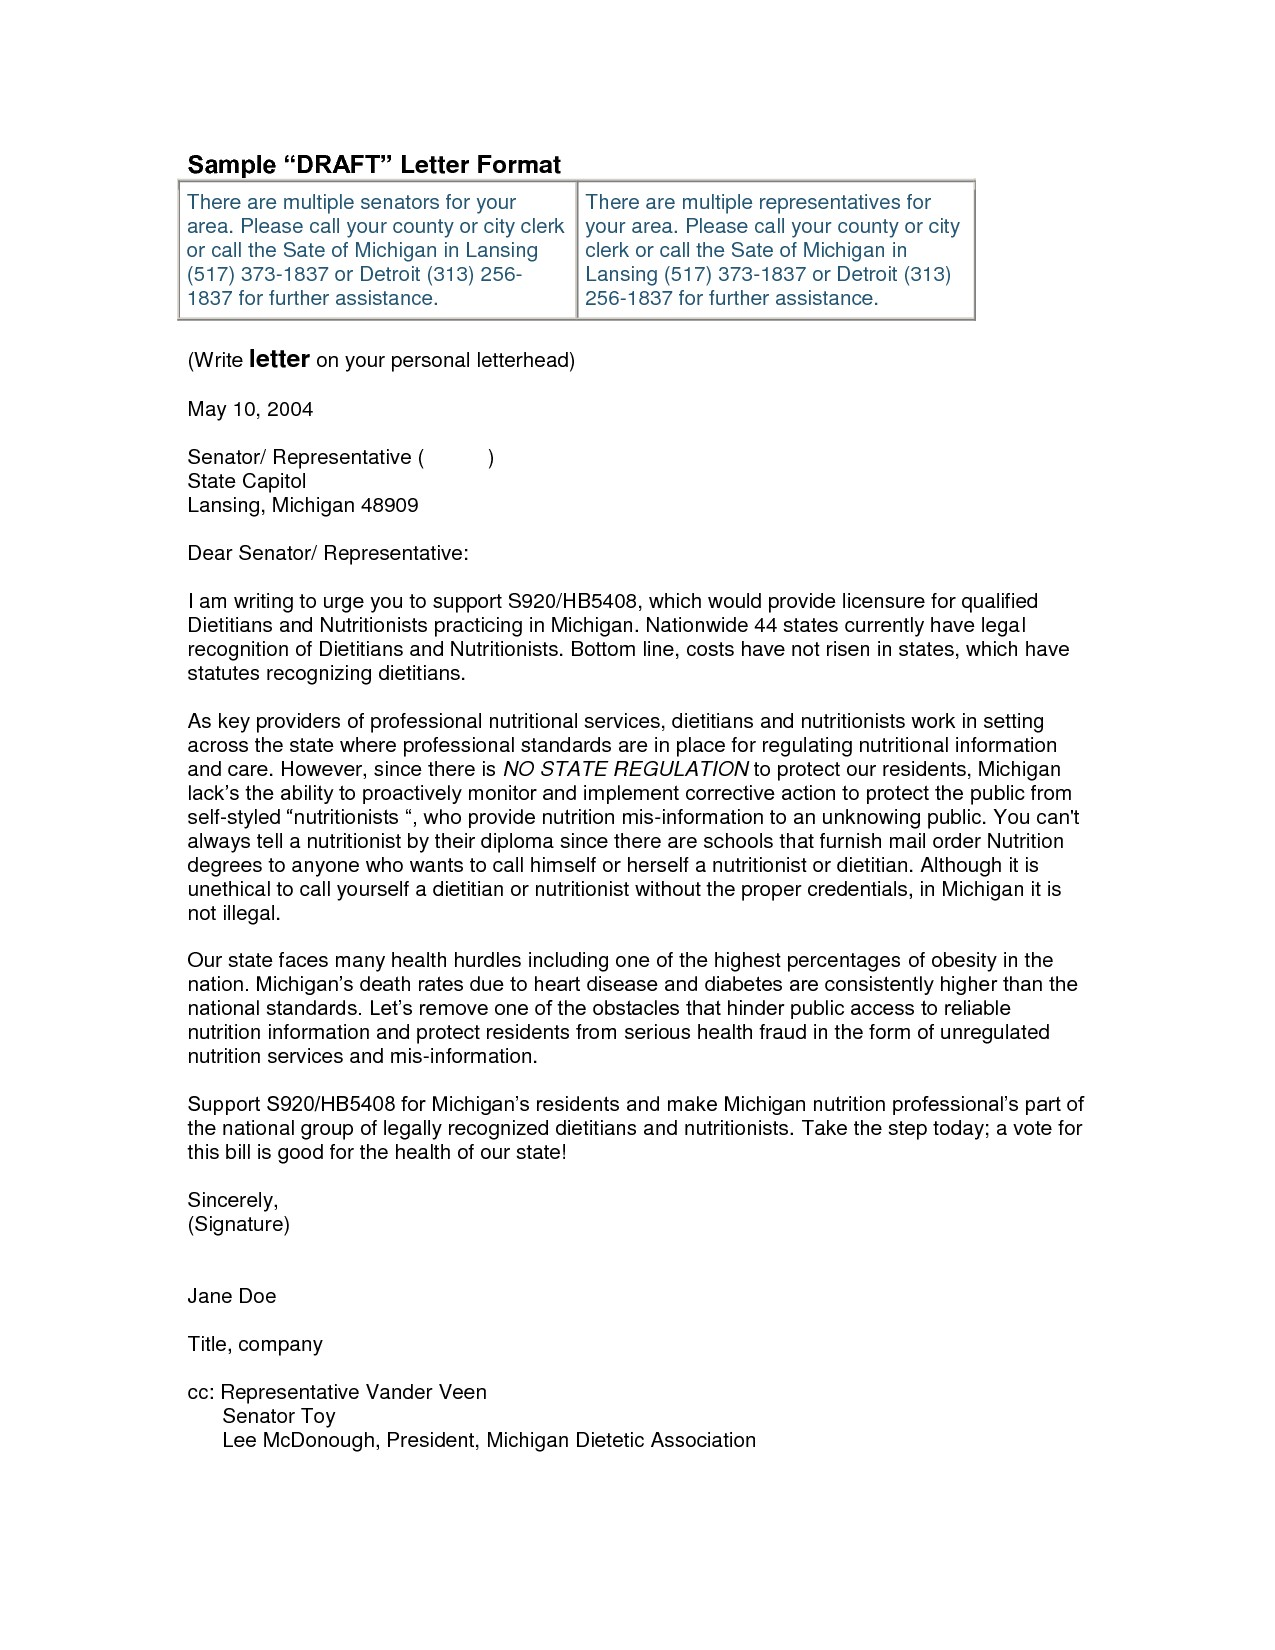 letter format with cc at bottom  How To Cc On A Letter   scrumps - letter format with cc at bottom